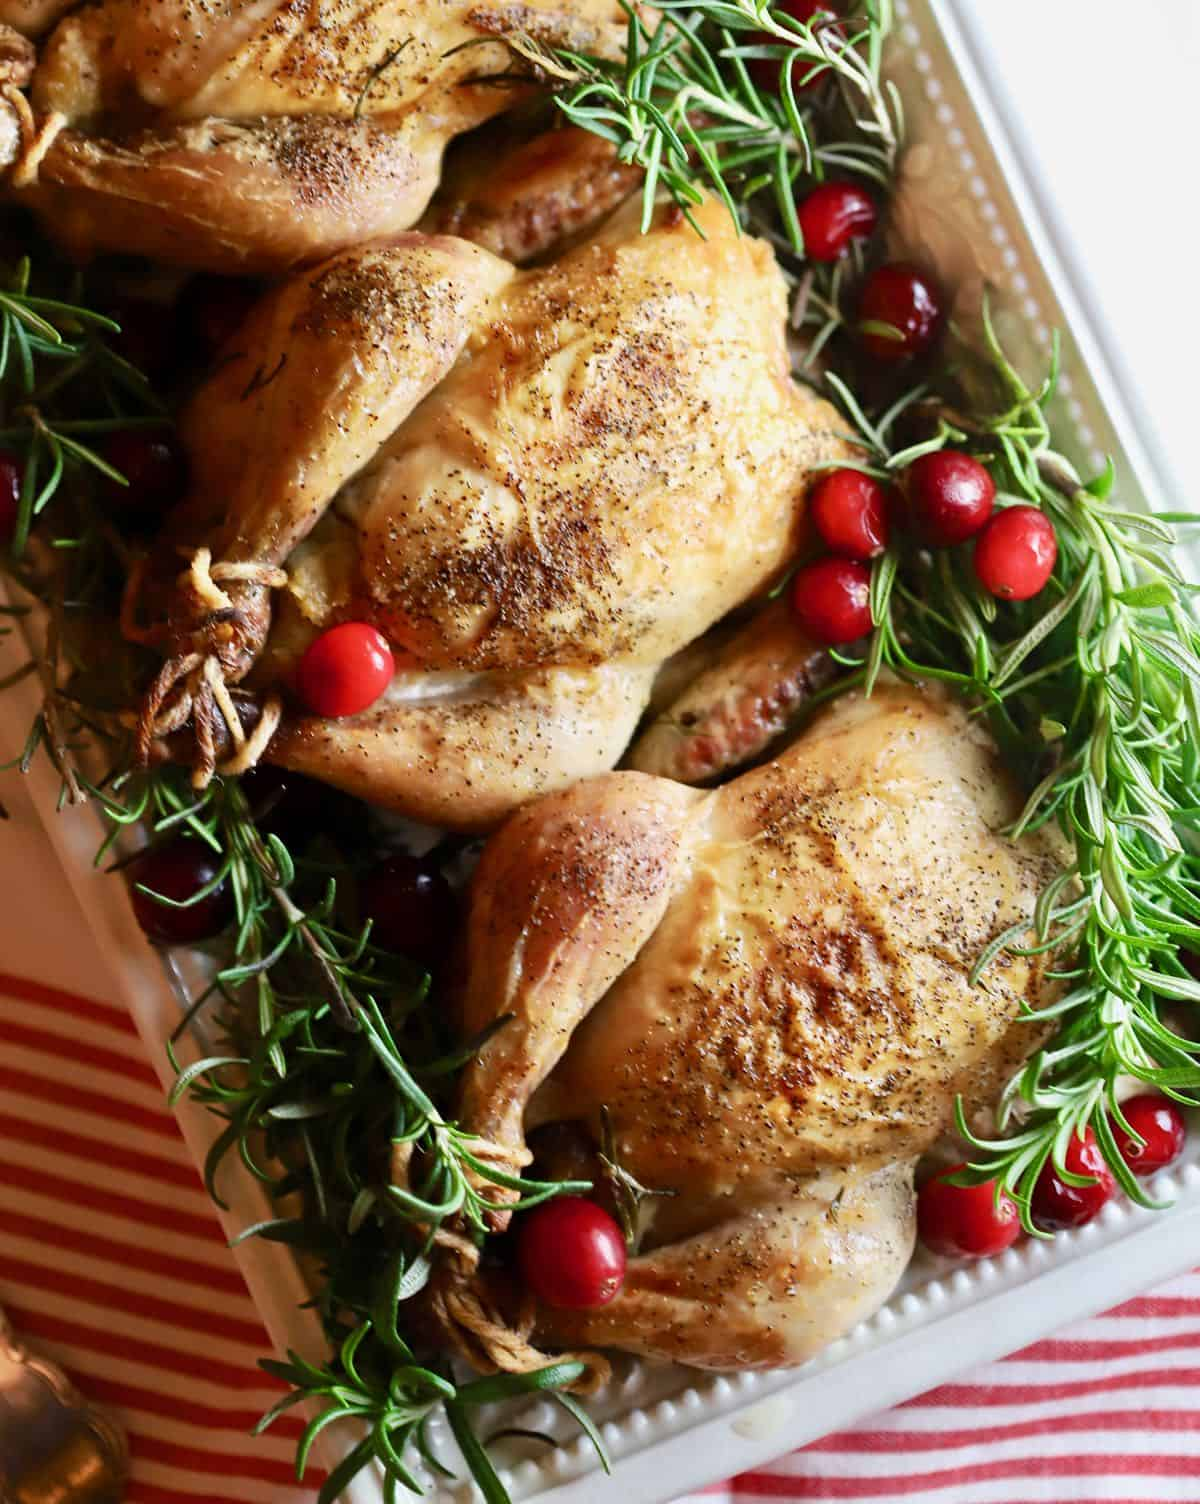 Three Cornish hens on a serving plate garnished with rosemary and cranberries.